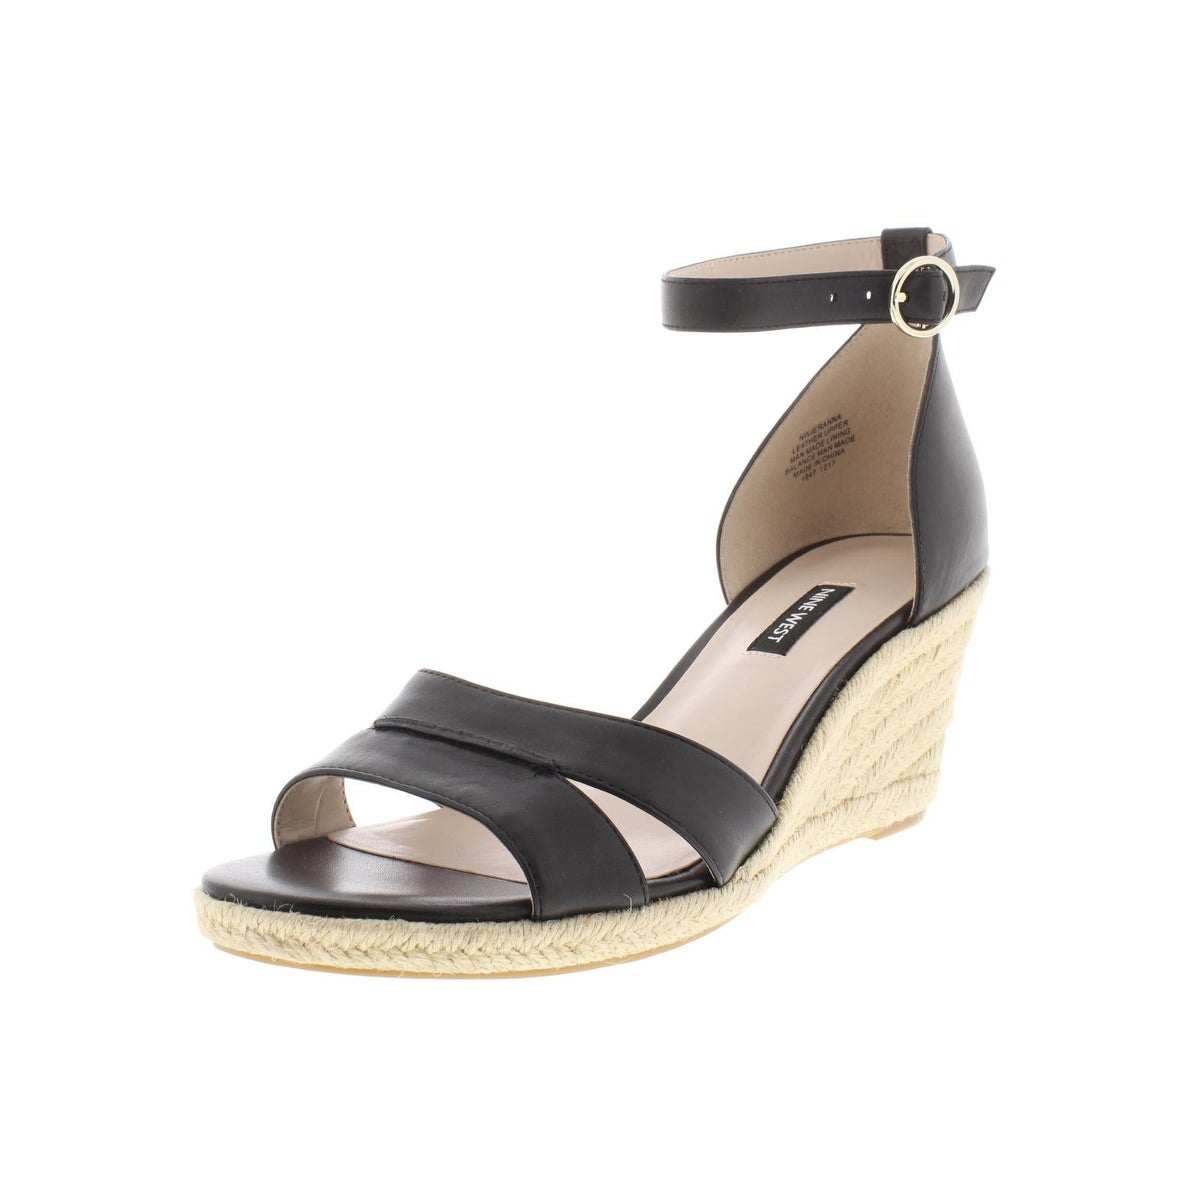 823fd871f Nine West Shoes | Shop our Best Clothing & Shoes Deals Online at Overstock